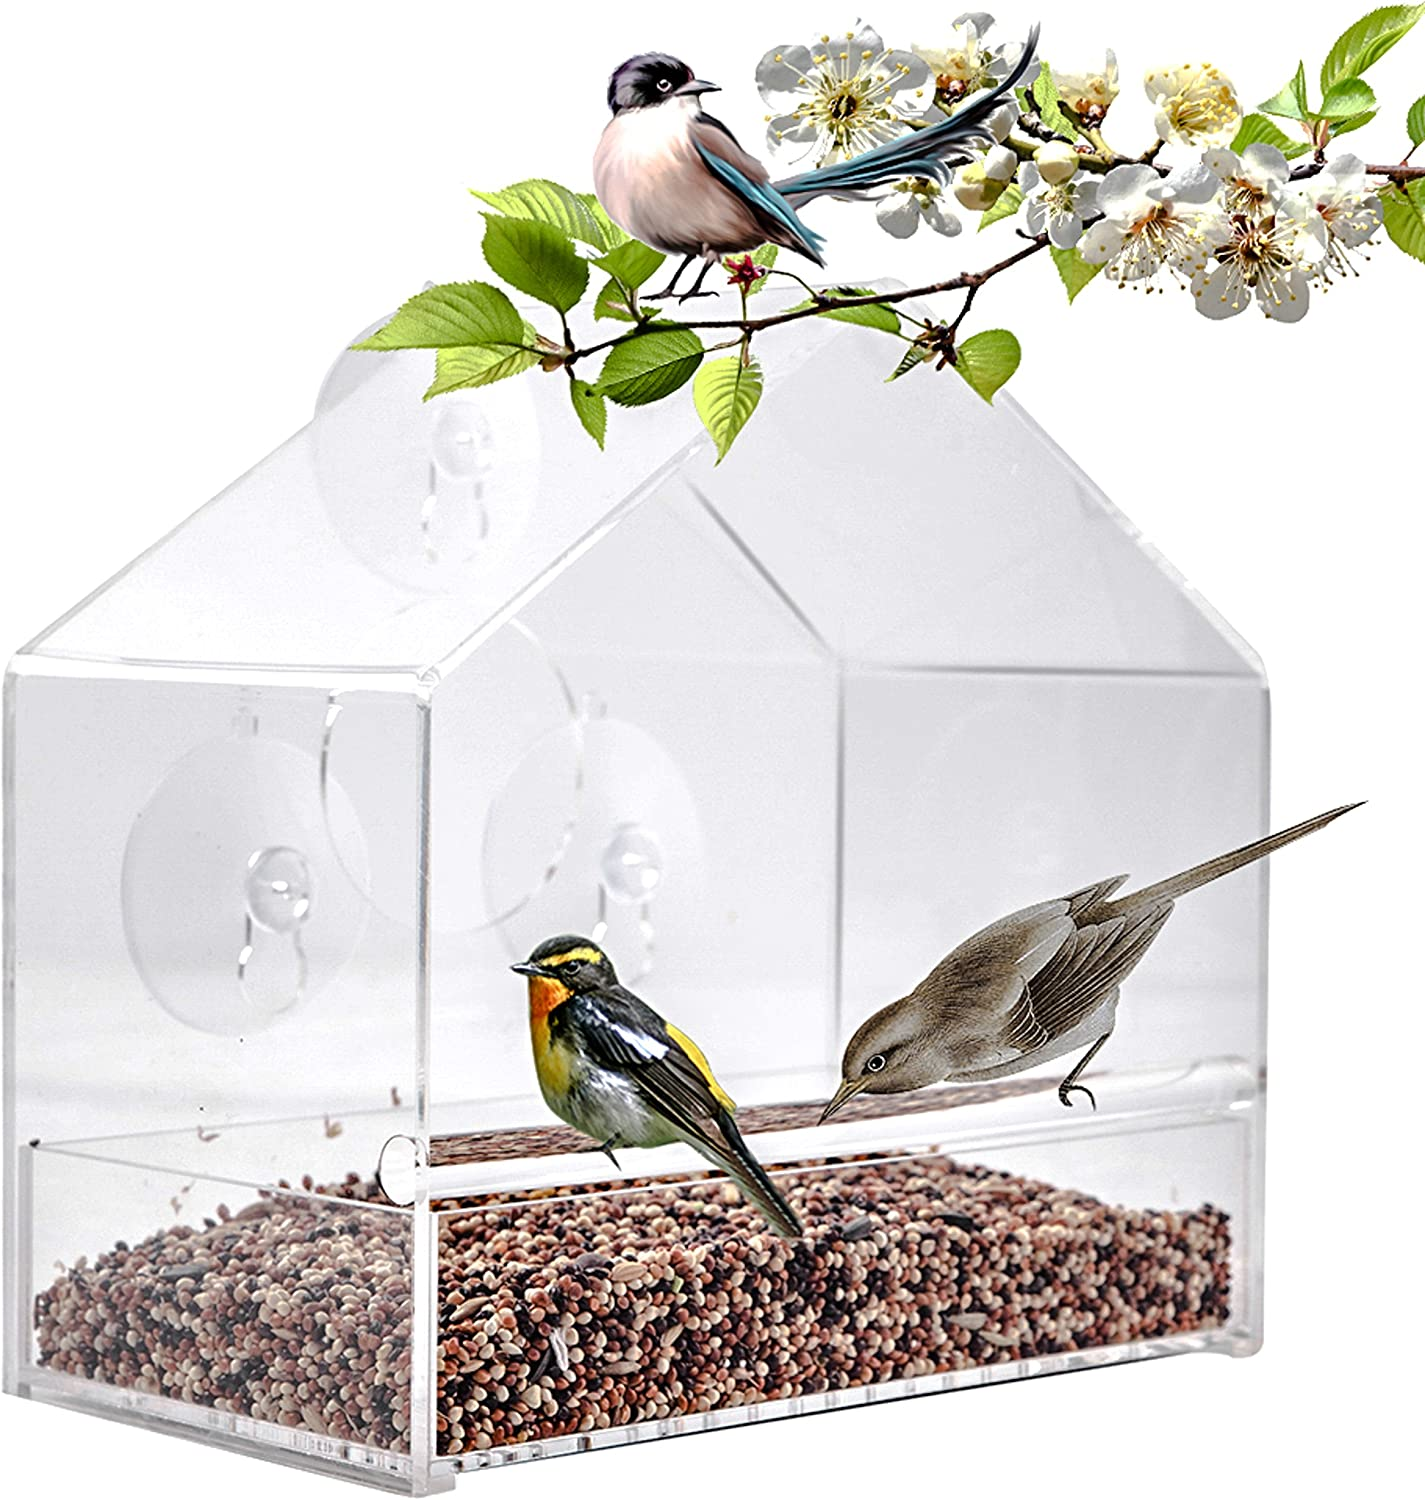 Acrylic Window Bird Feeder with Sliding Seed Tray and Strong Suction Cups Easy to Clean Bird Feeder for Outdoor